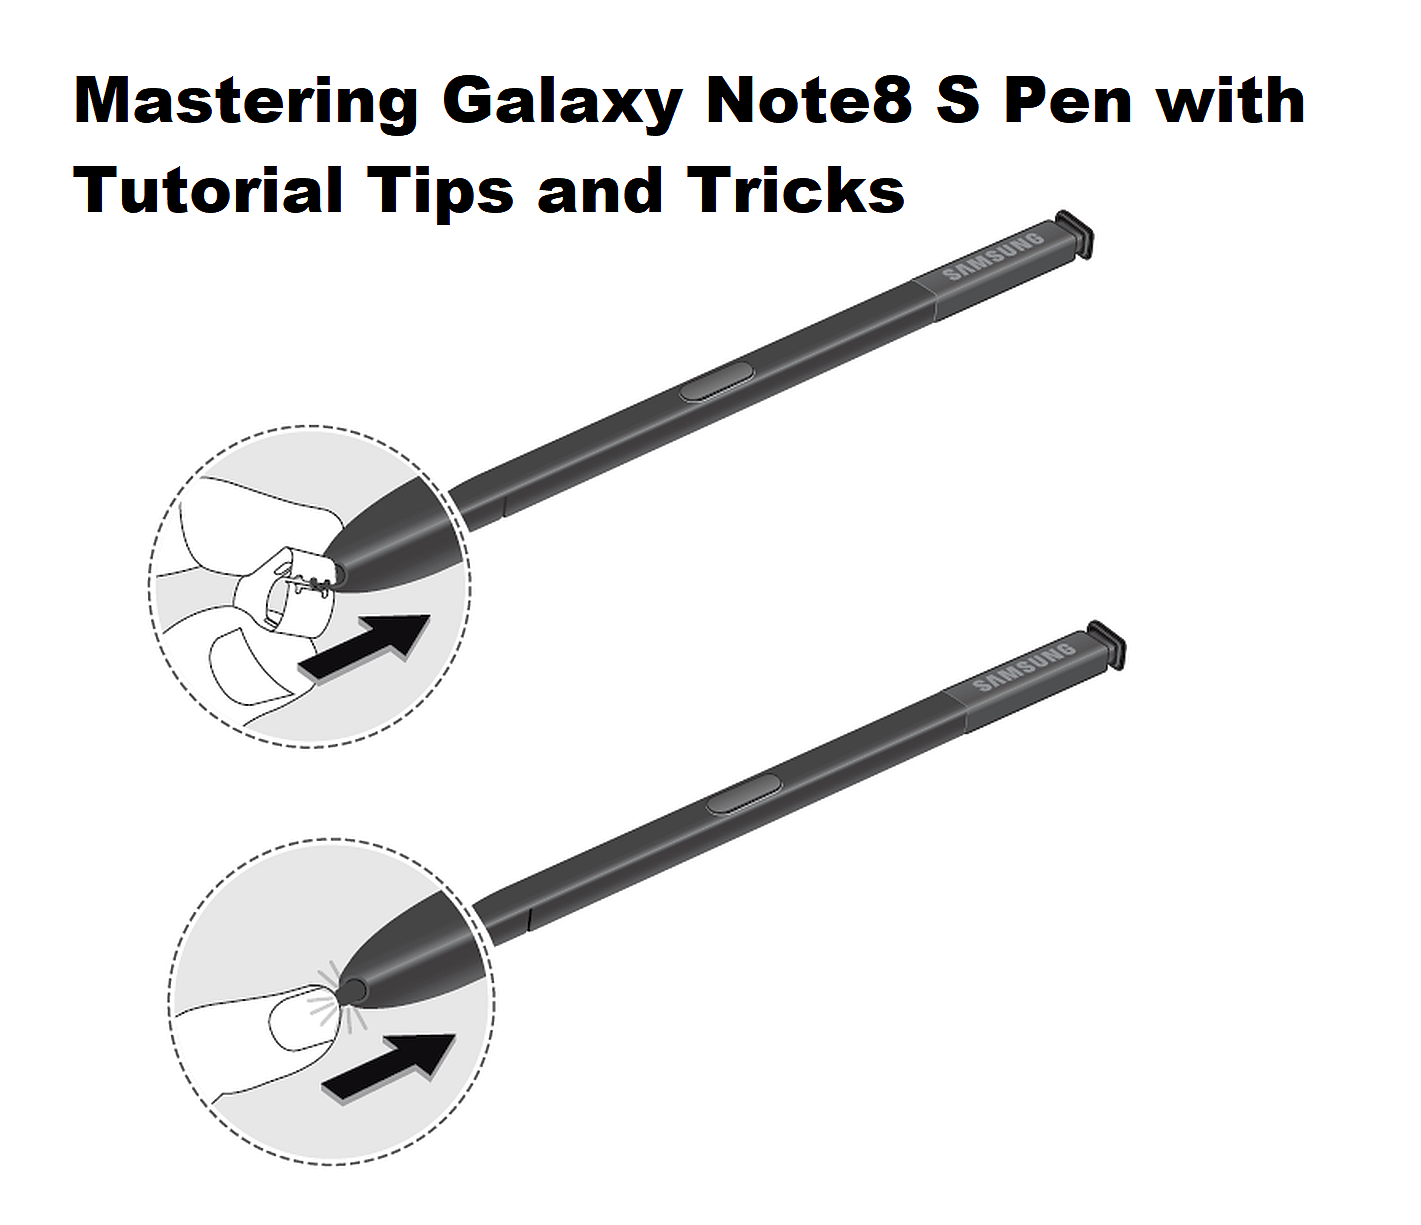 Mastering Galaxy Note8 S Pen with Tutorial Tips and Tricks